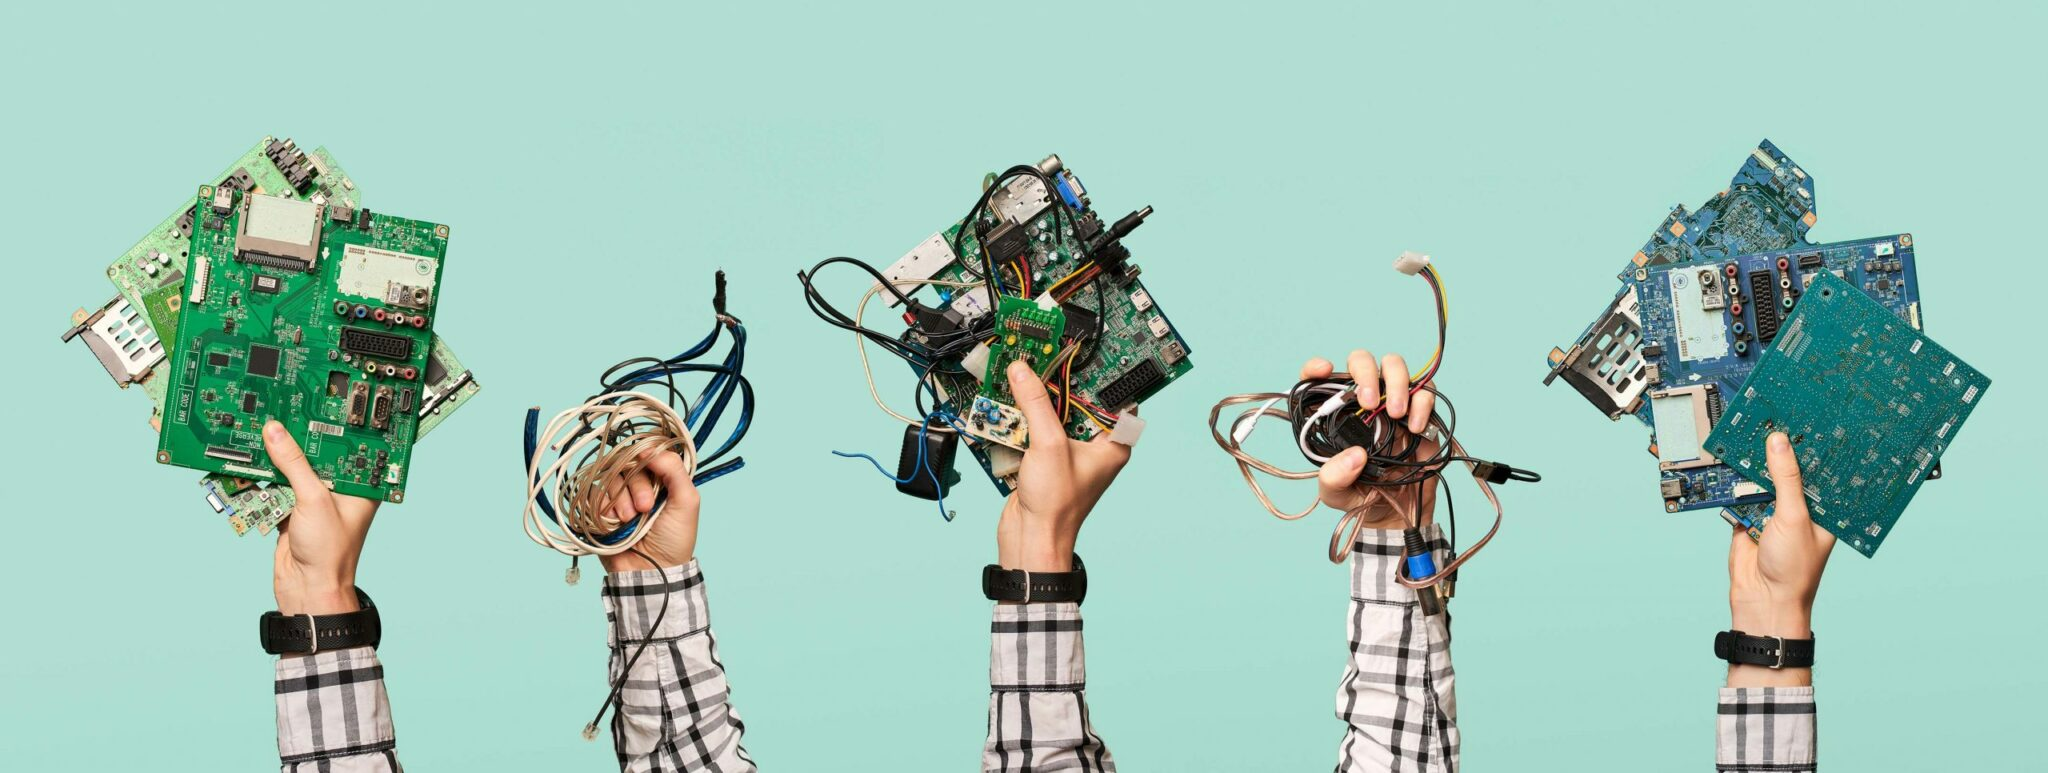 Hands holding electronic cords and circuit boards